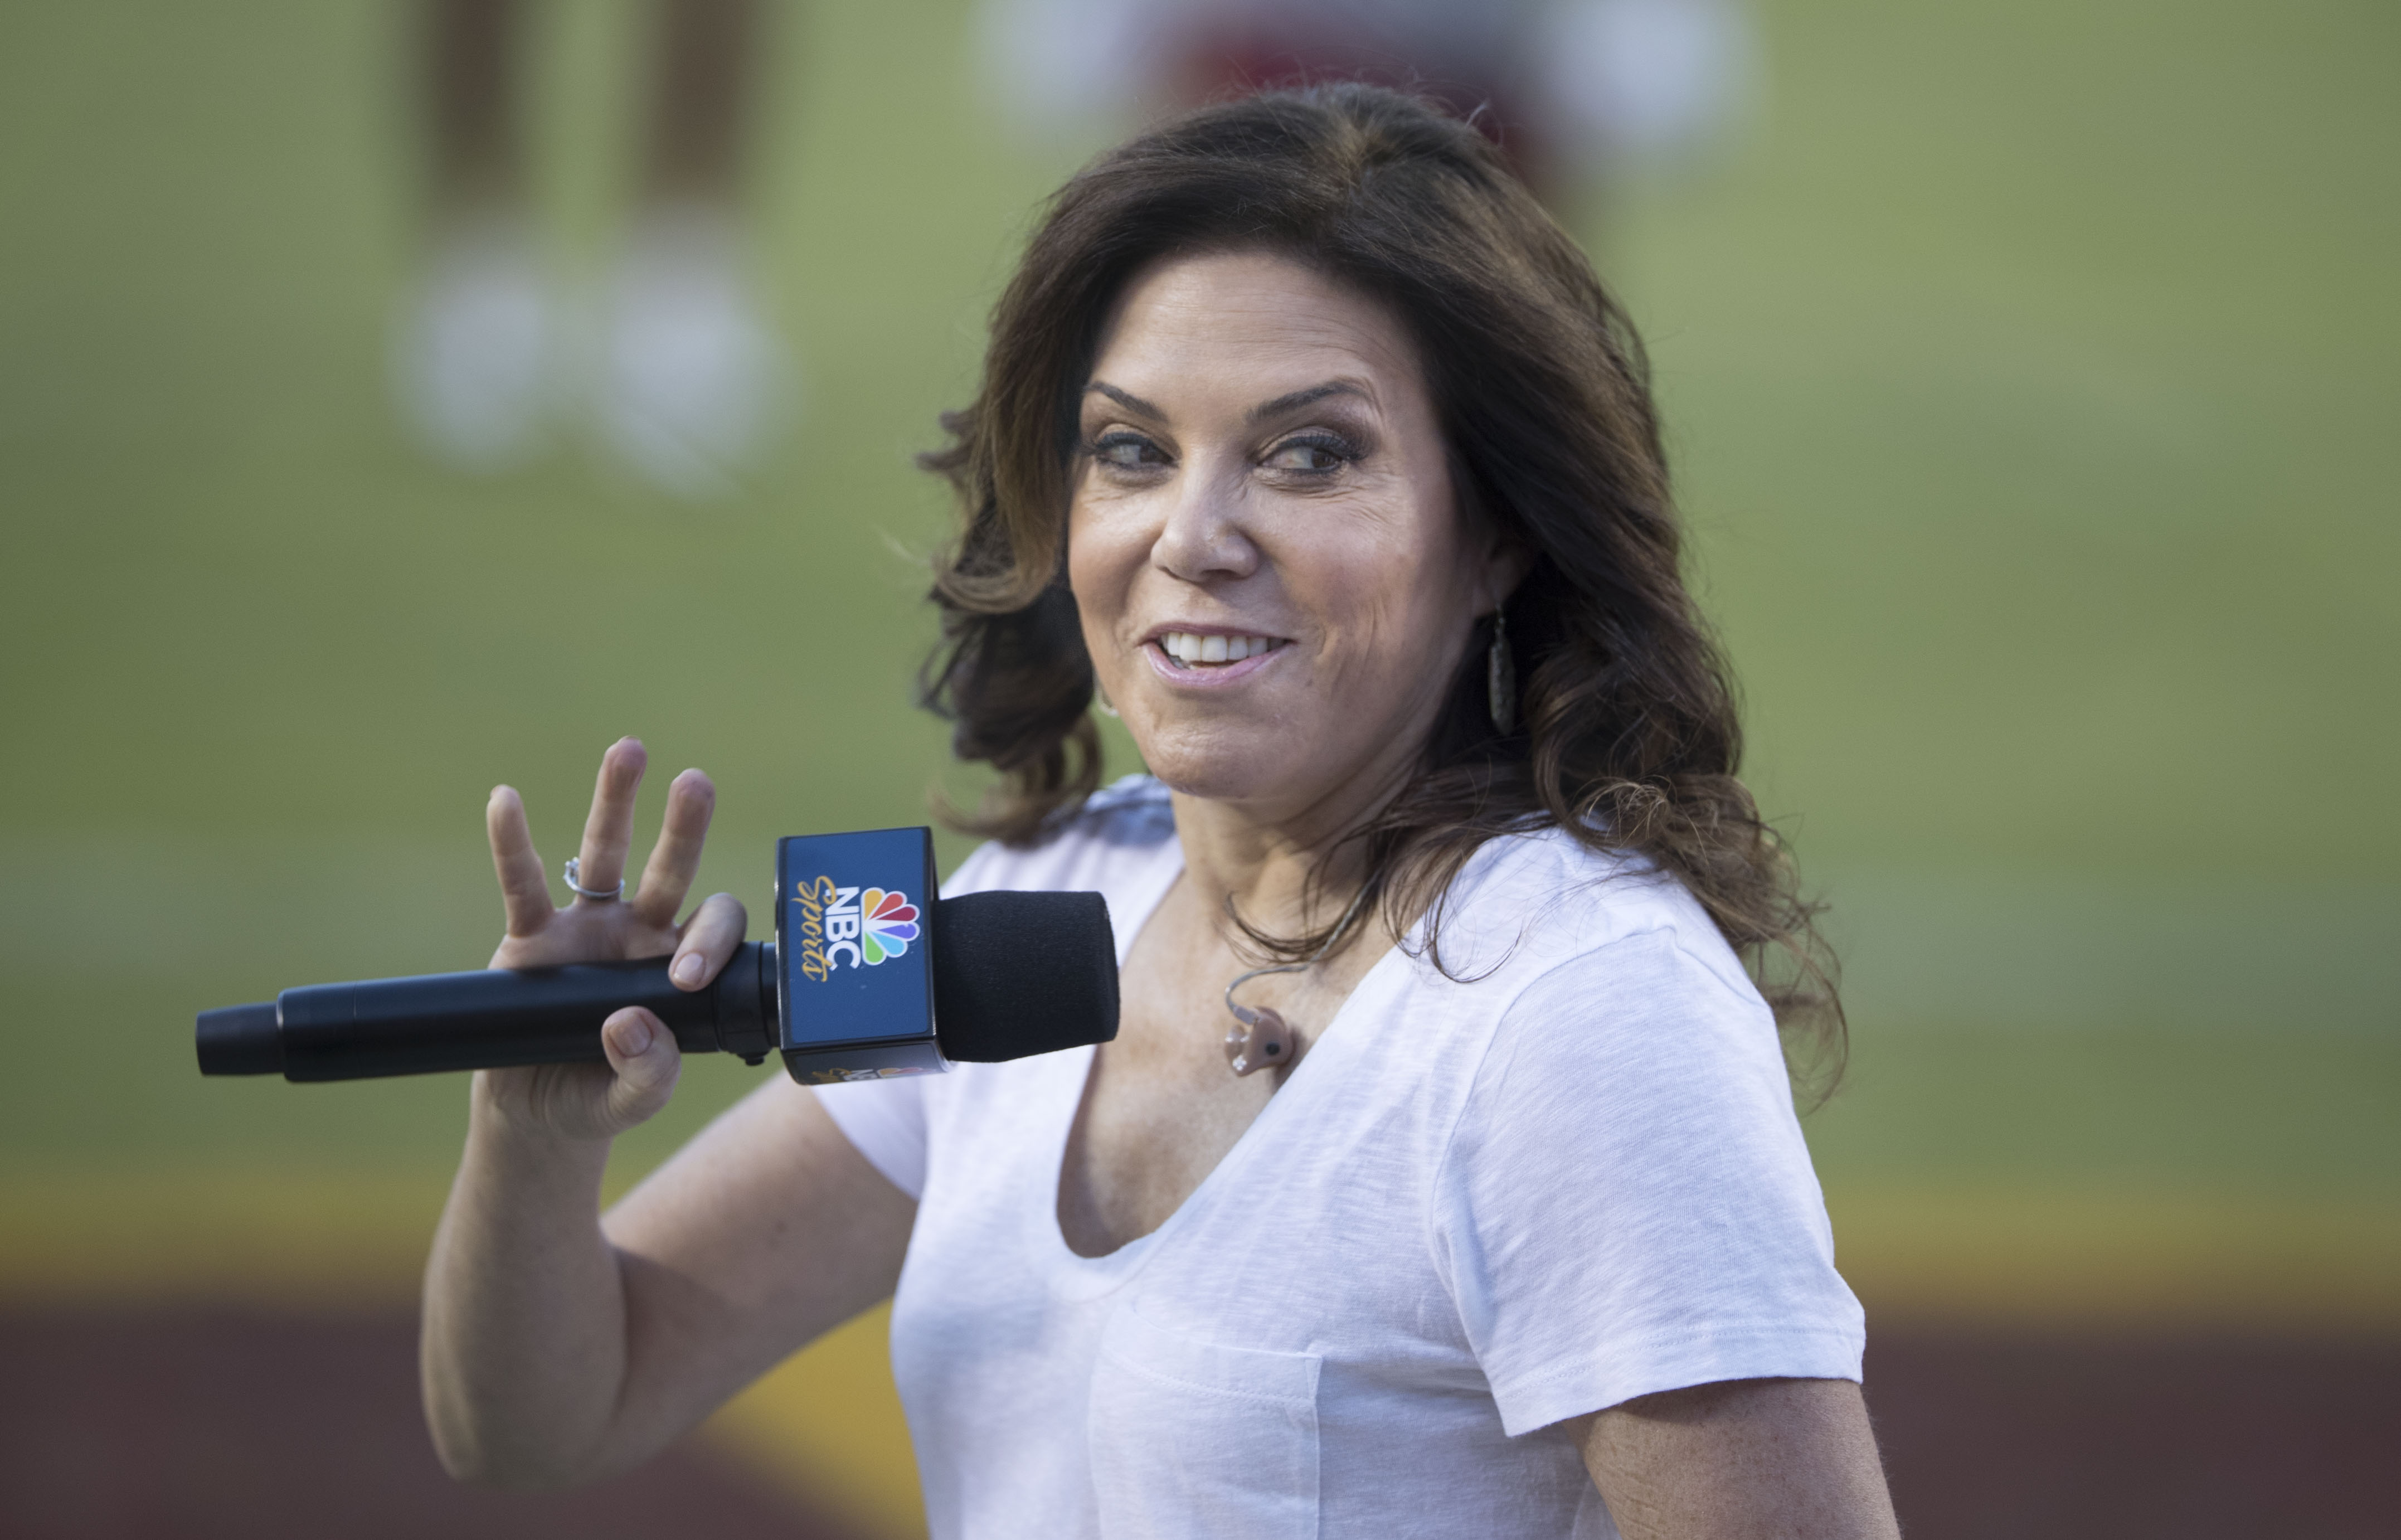 The 53-year old daughter of father (?) and mother(?) Michele Tafoya in 2018 photo. Michele Tafoya earned a 0.2 million dollar salary - leaving the net worth at 2 million in 2018